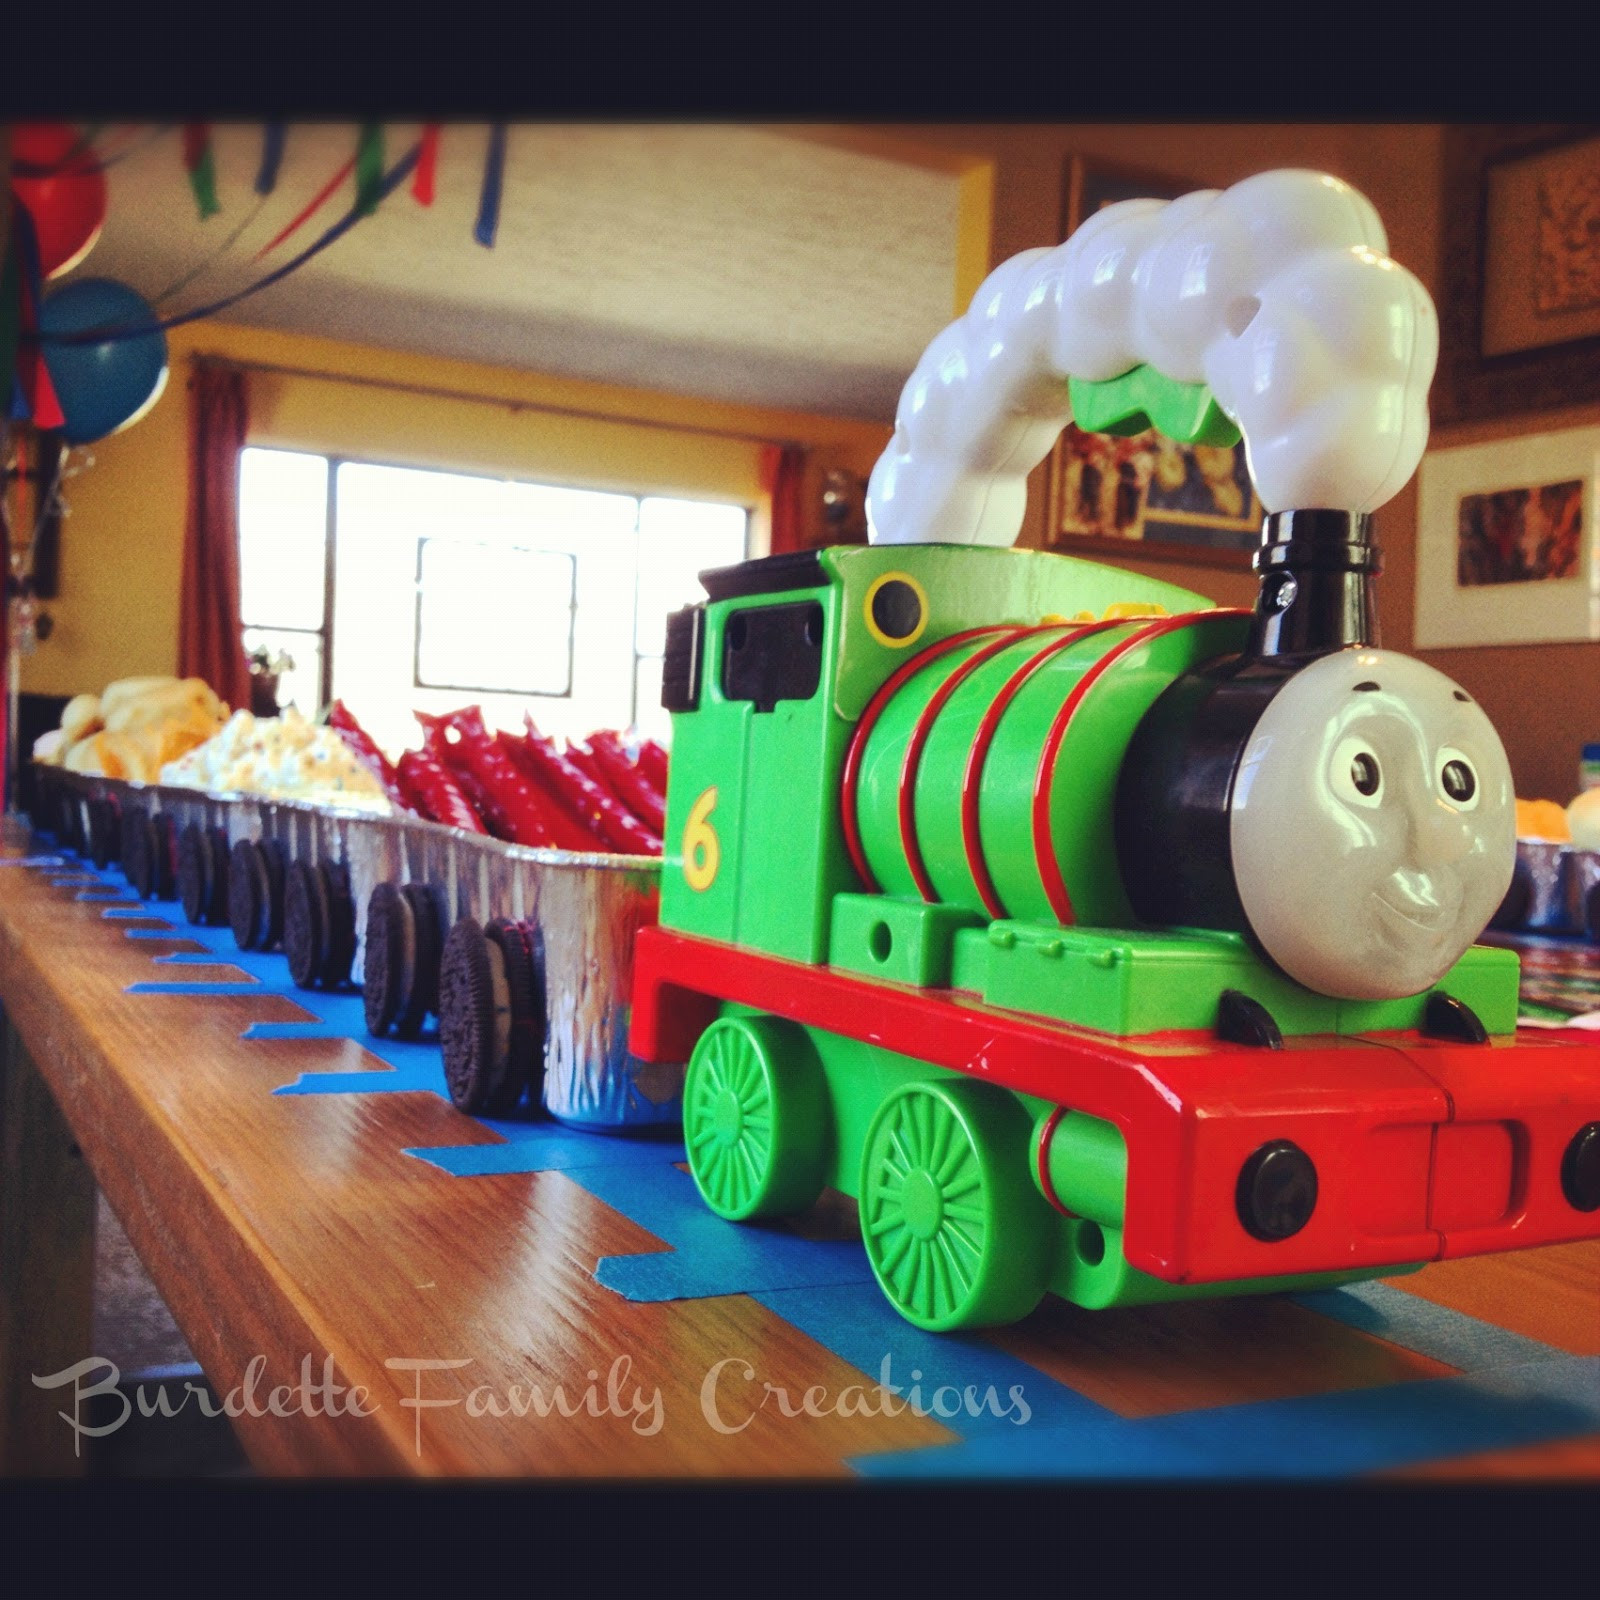 Thomas The Train Birthday Decorations  Burdette Family Creations Thomas the Train Birthday Party